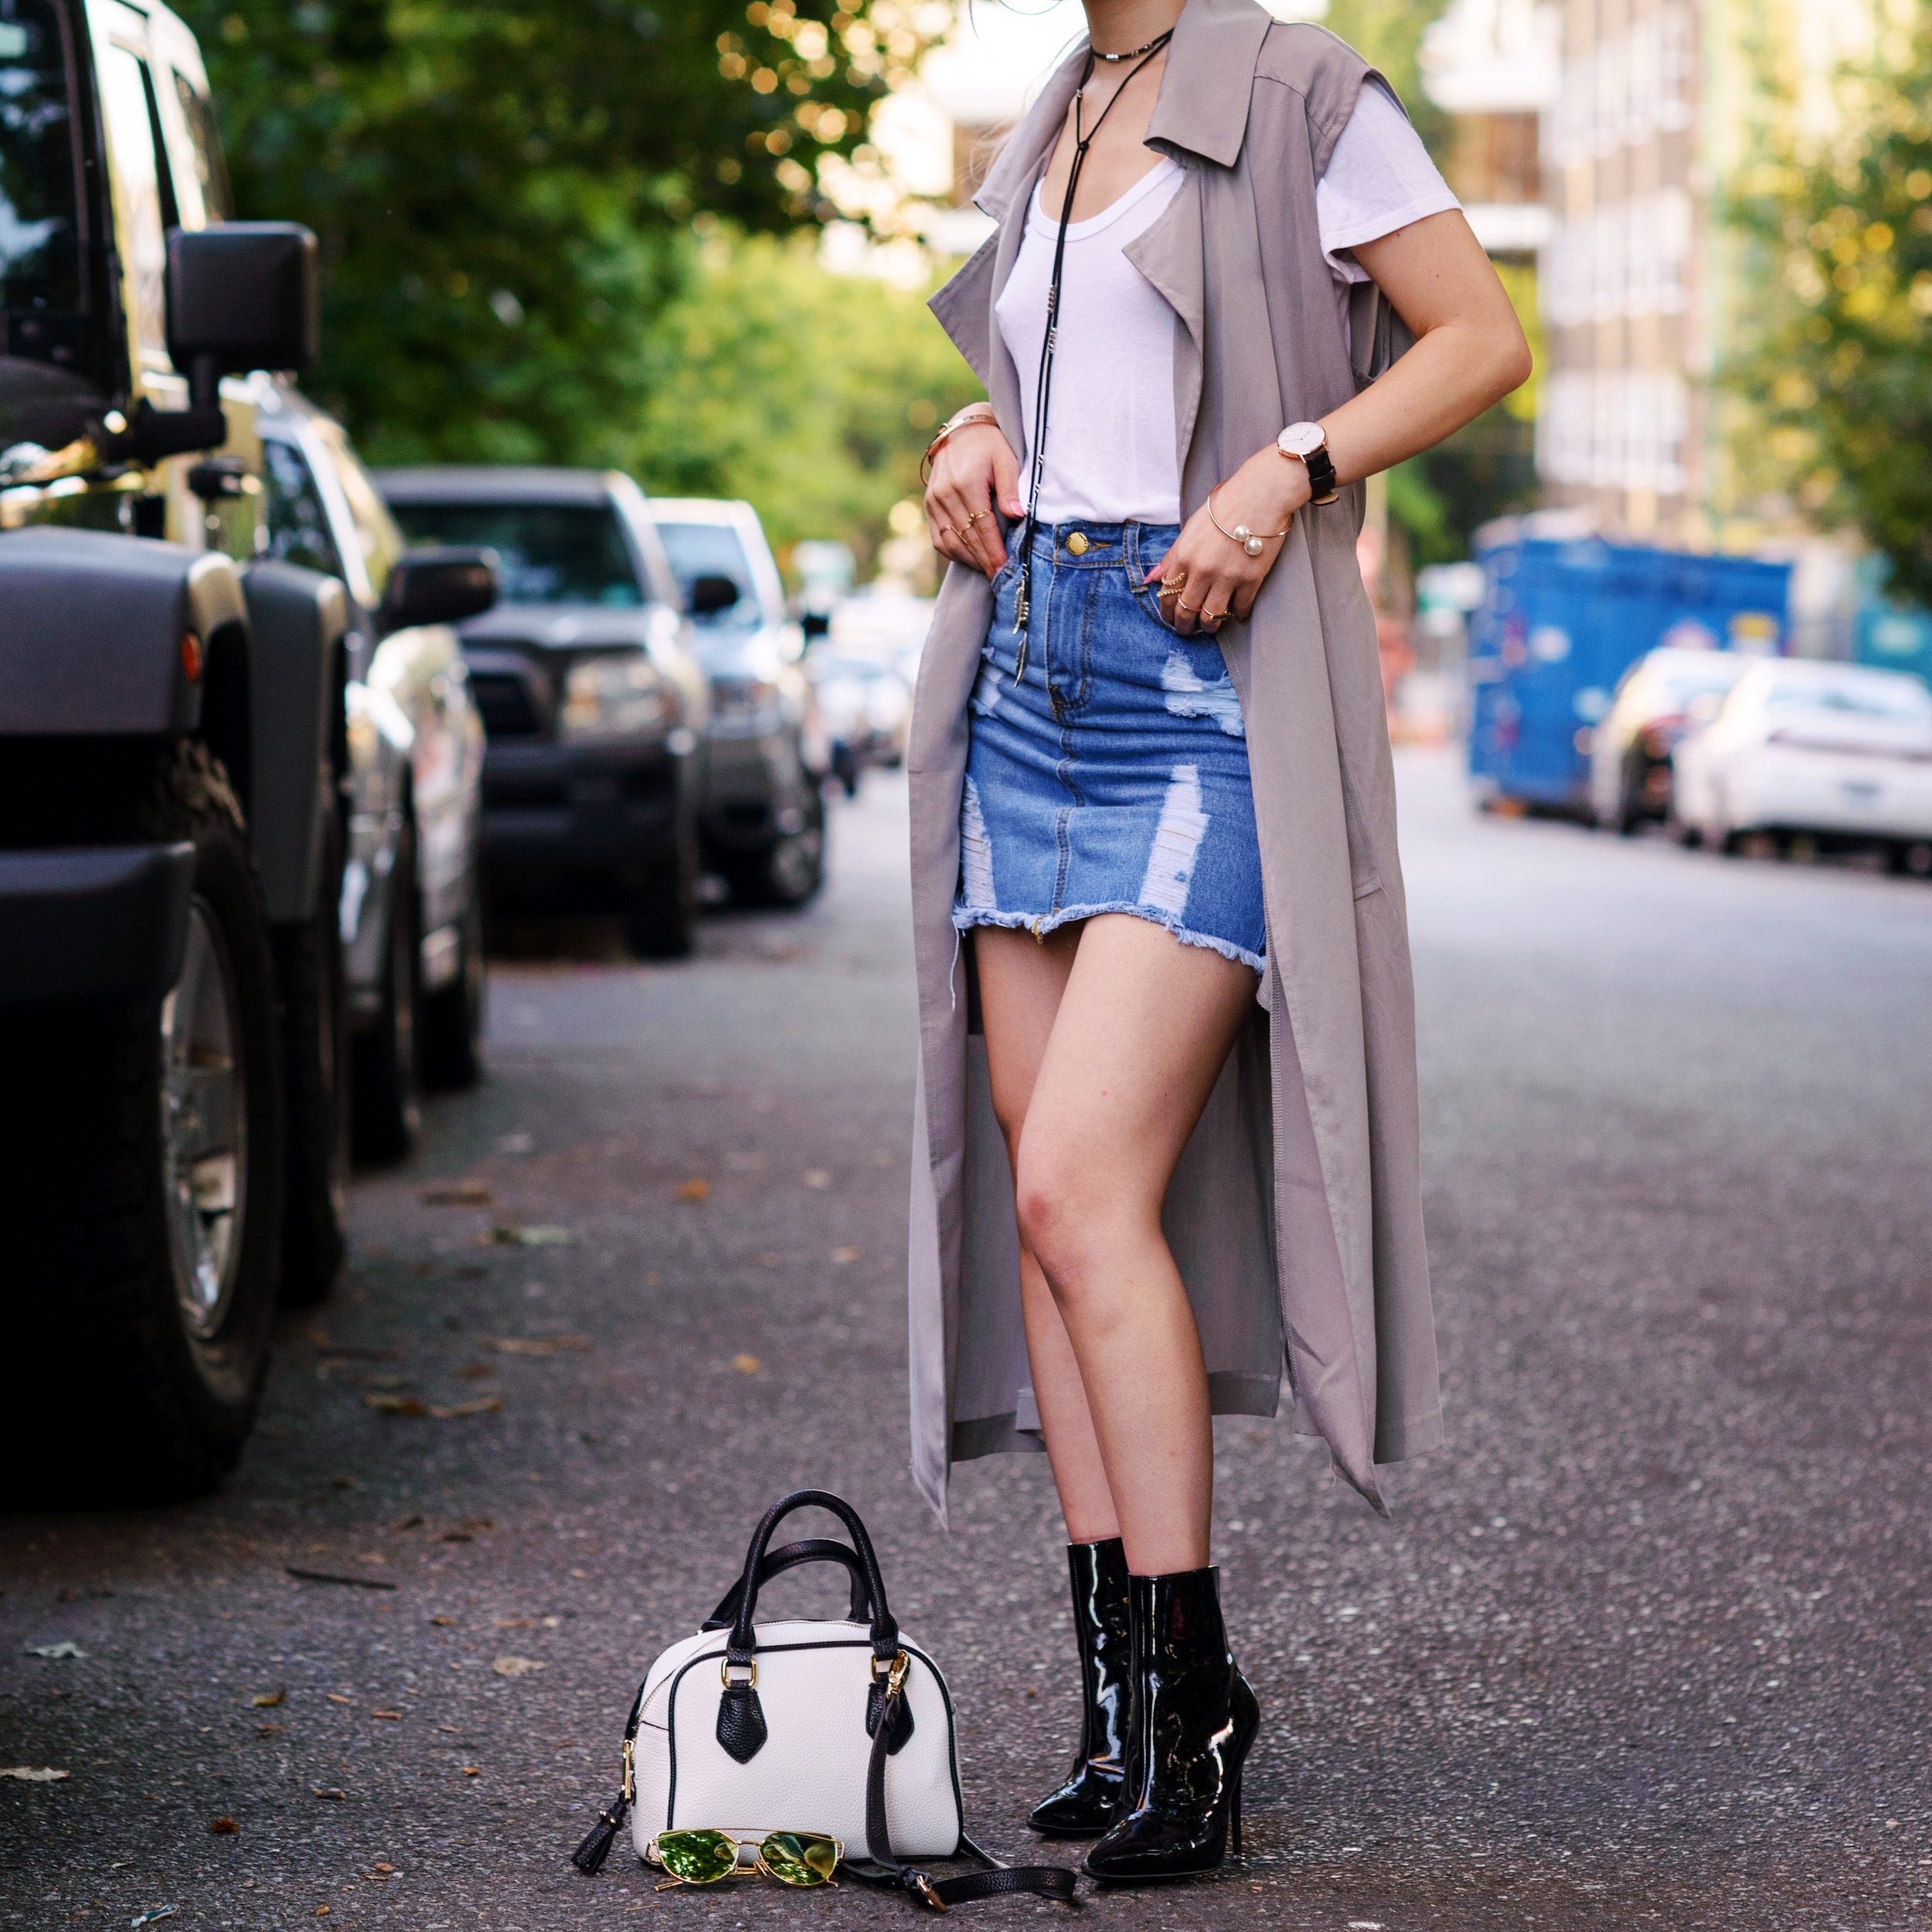 Dezzal Grey Trench Coat_TOPSHOP White T-shirt_She Inside Highwaisted Denim Mini Skit_ALDO Patent Boots_ZARA Mini Bag_Suede Choker_Daniel Wellington Watch_Aikas Love Cloeset_Seattle Fashion Blogger from Japan_Lavender Hair_Messy low bun Hair 15